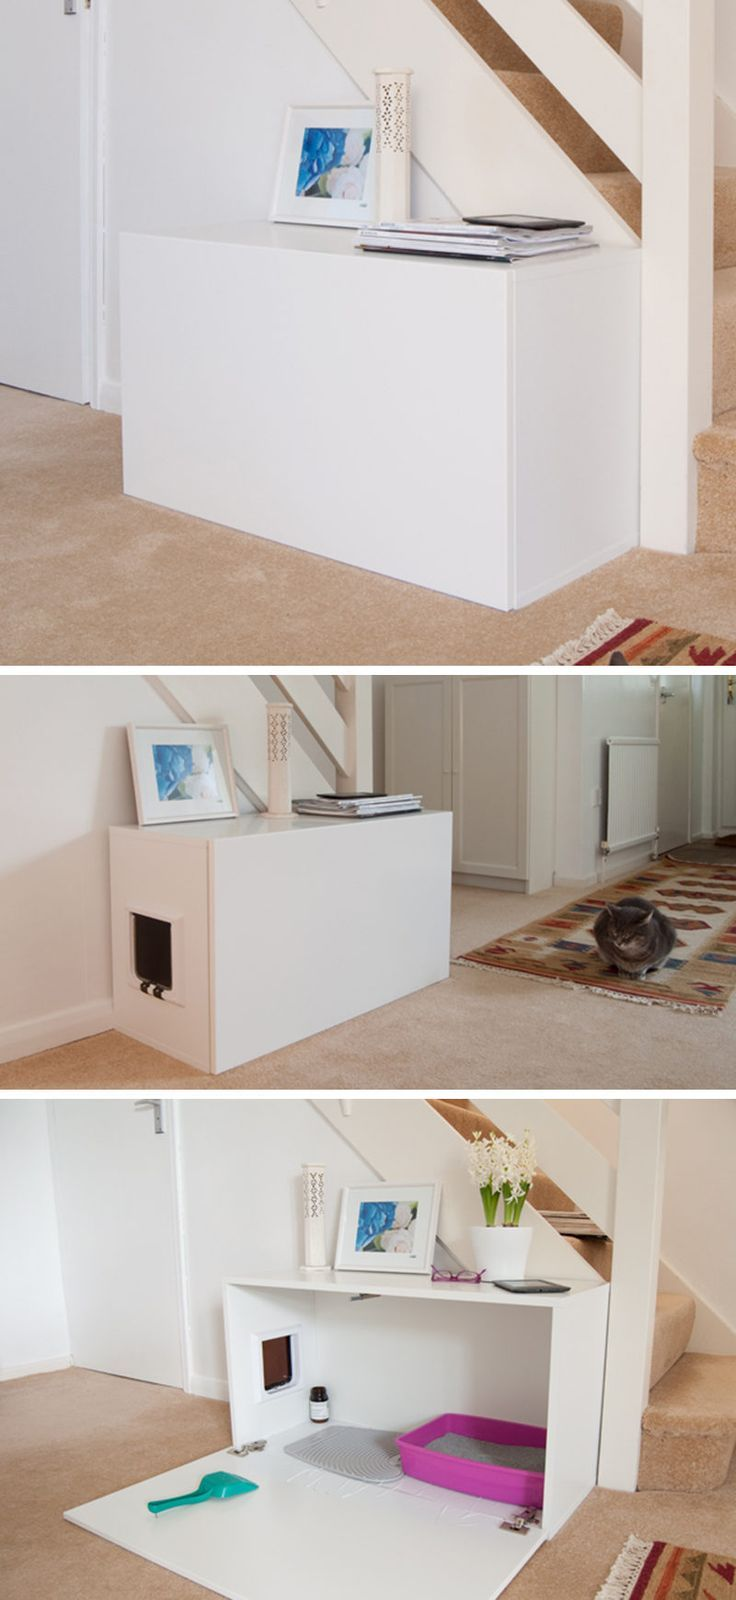 IKEA Hackers: Cat litter box in a living room, why not? - Possible ...